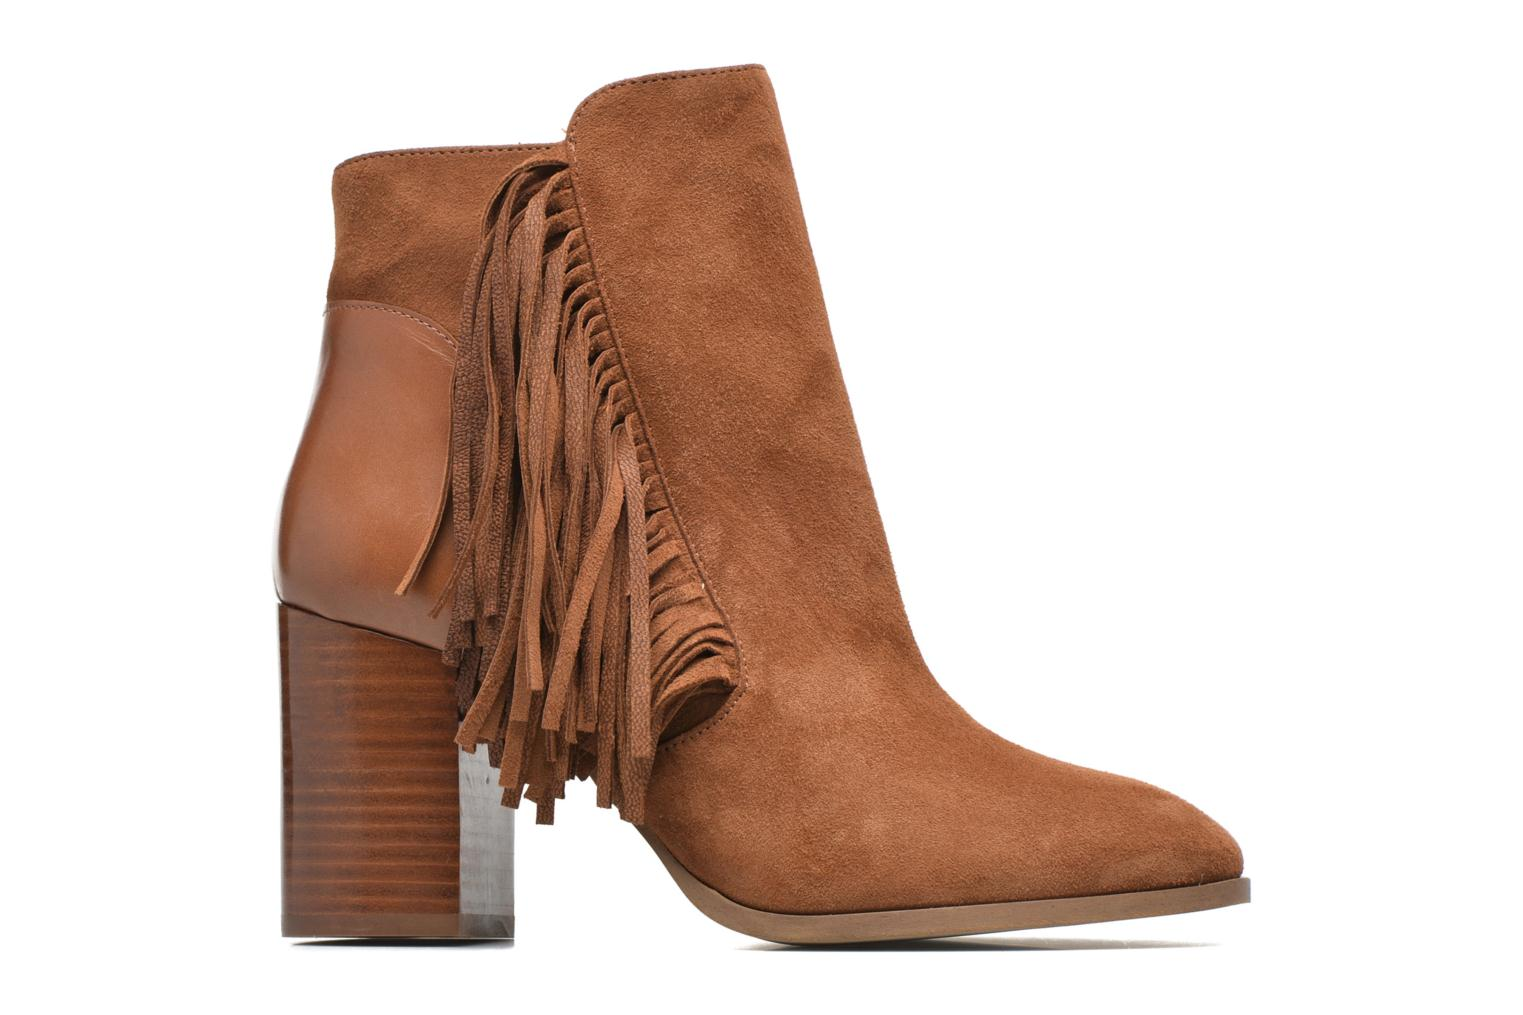 Bottines et boots Made by SARENZA See Ya Topanga #8 Marron vue détail/paire